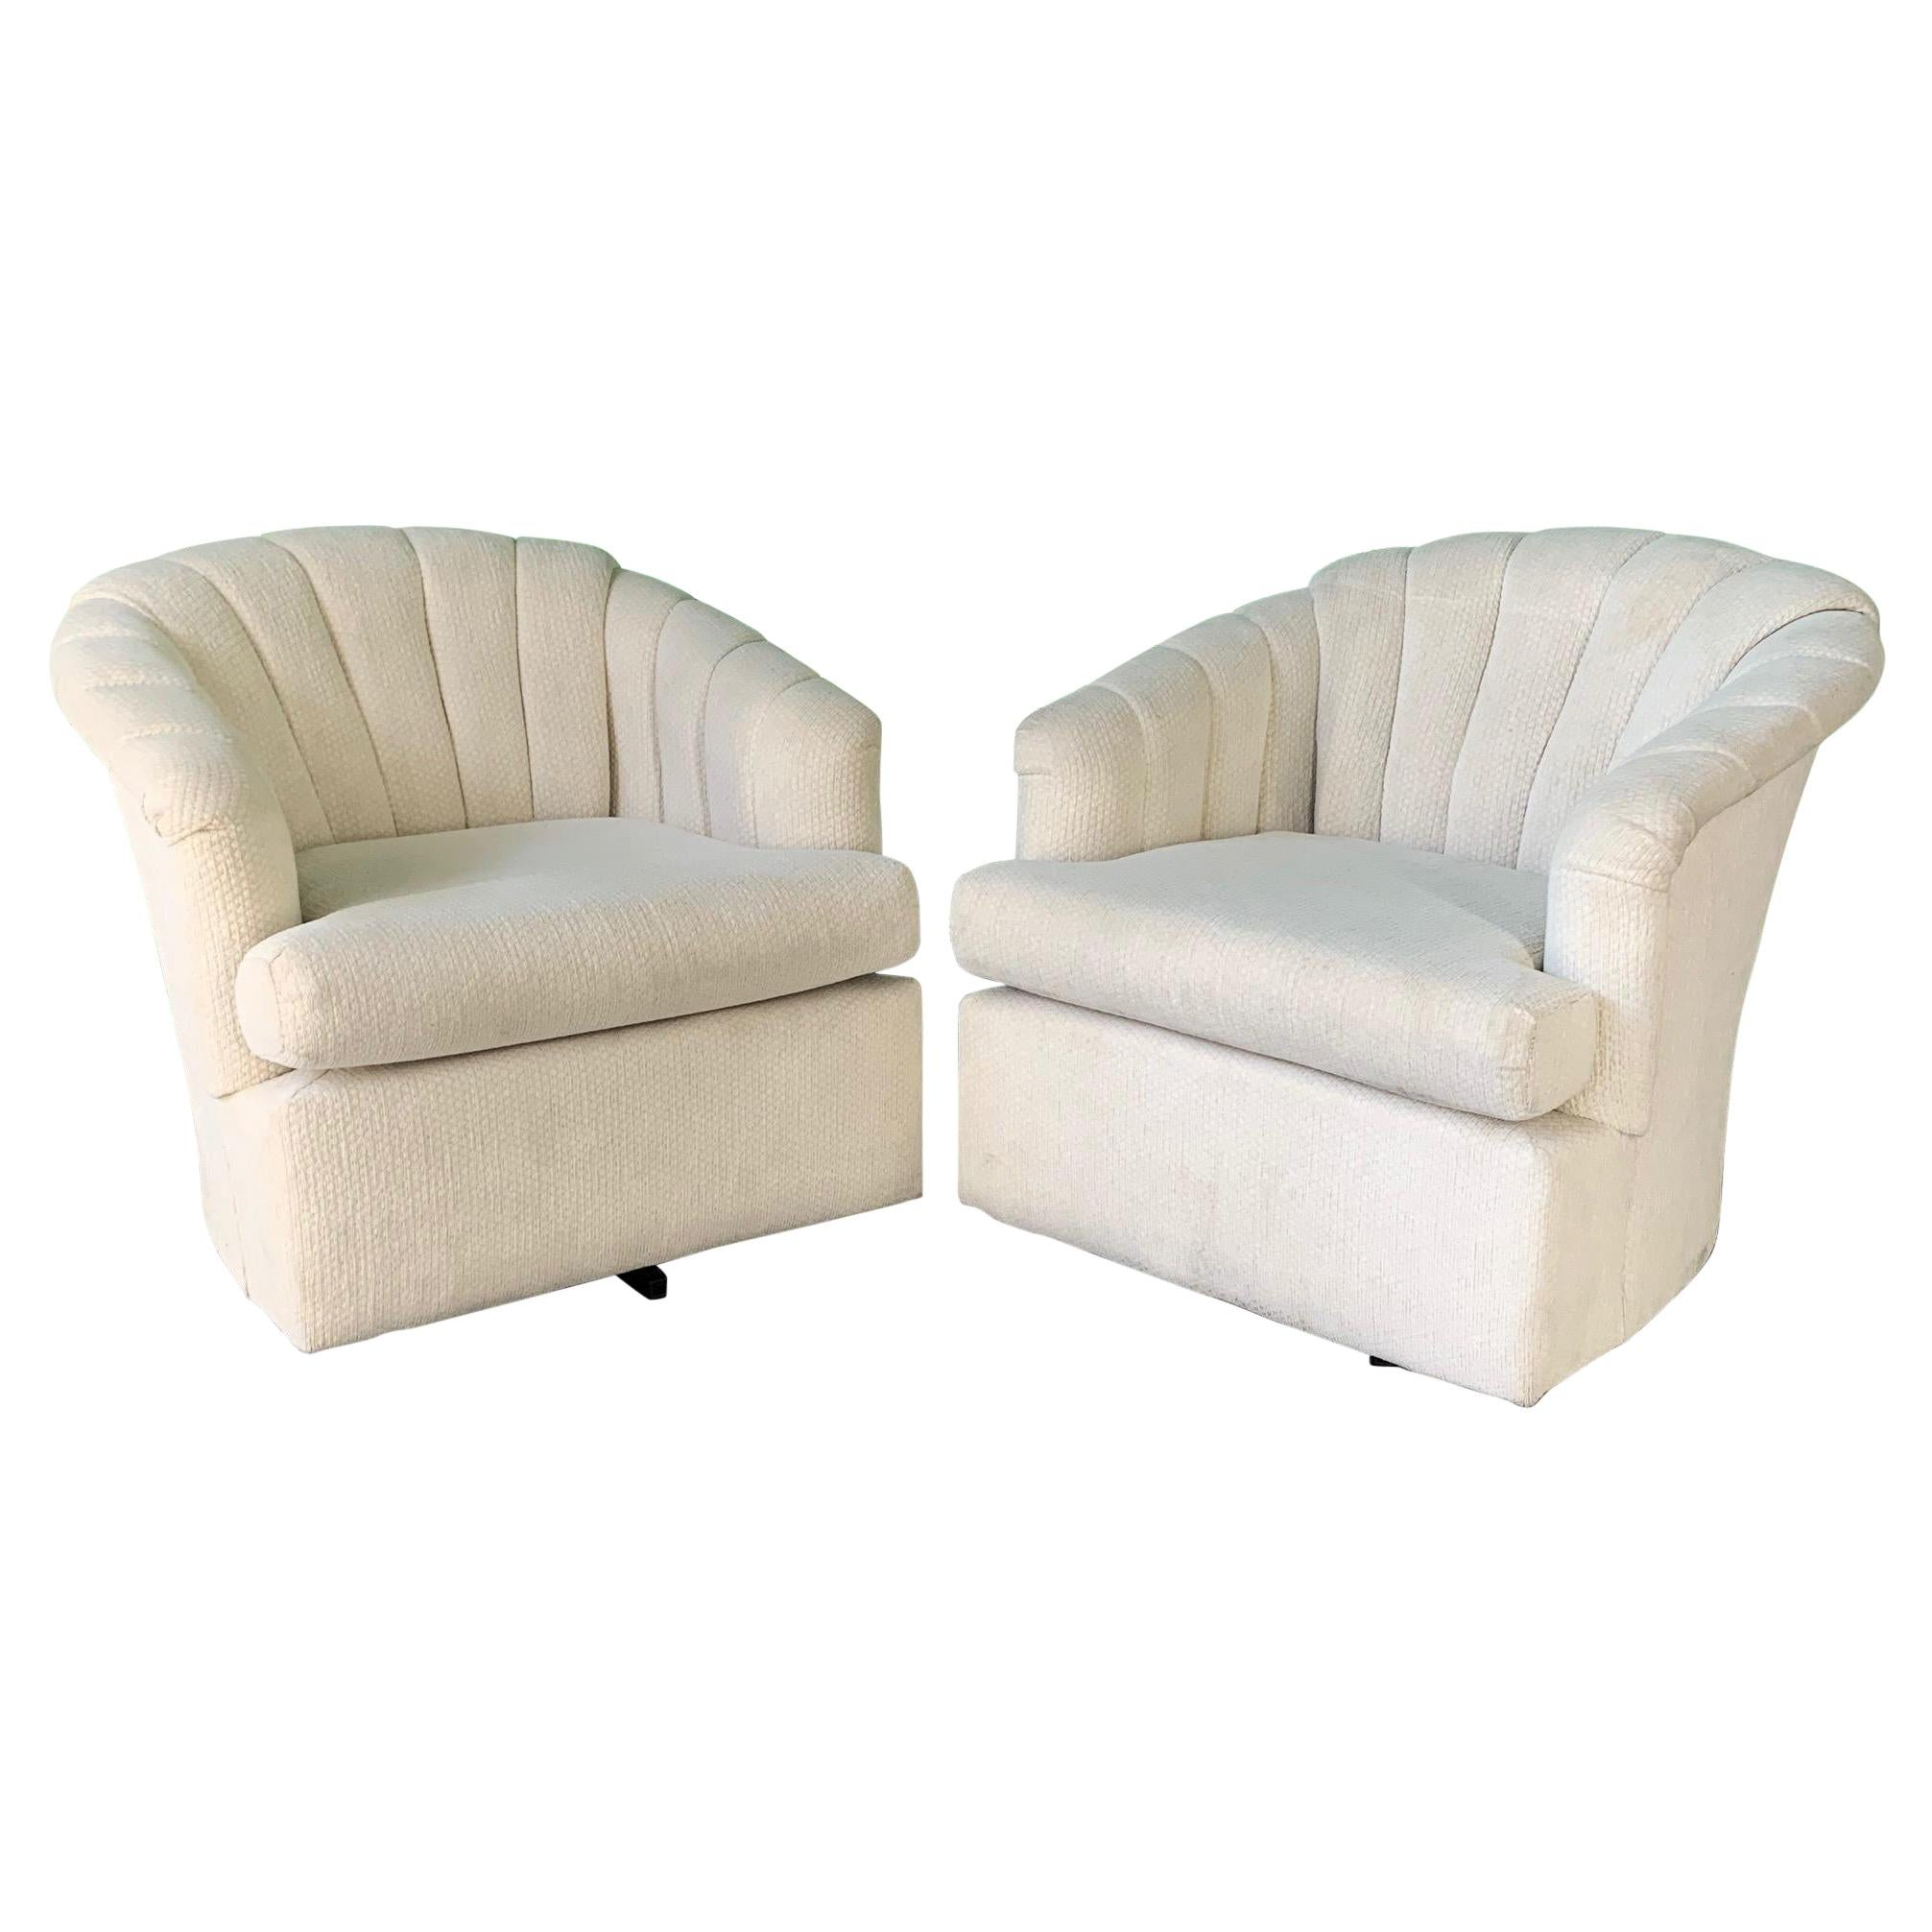 Vintage Channel Back Tufted Swivel Club Chairs, a Pair